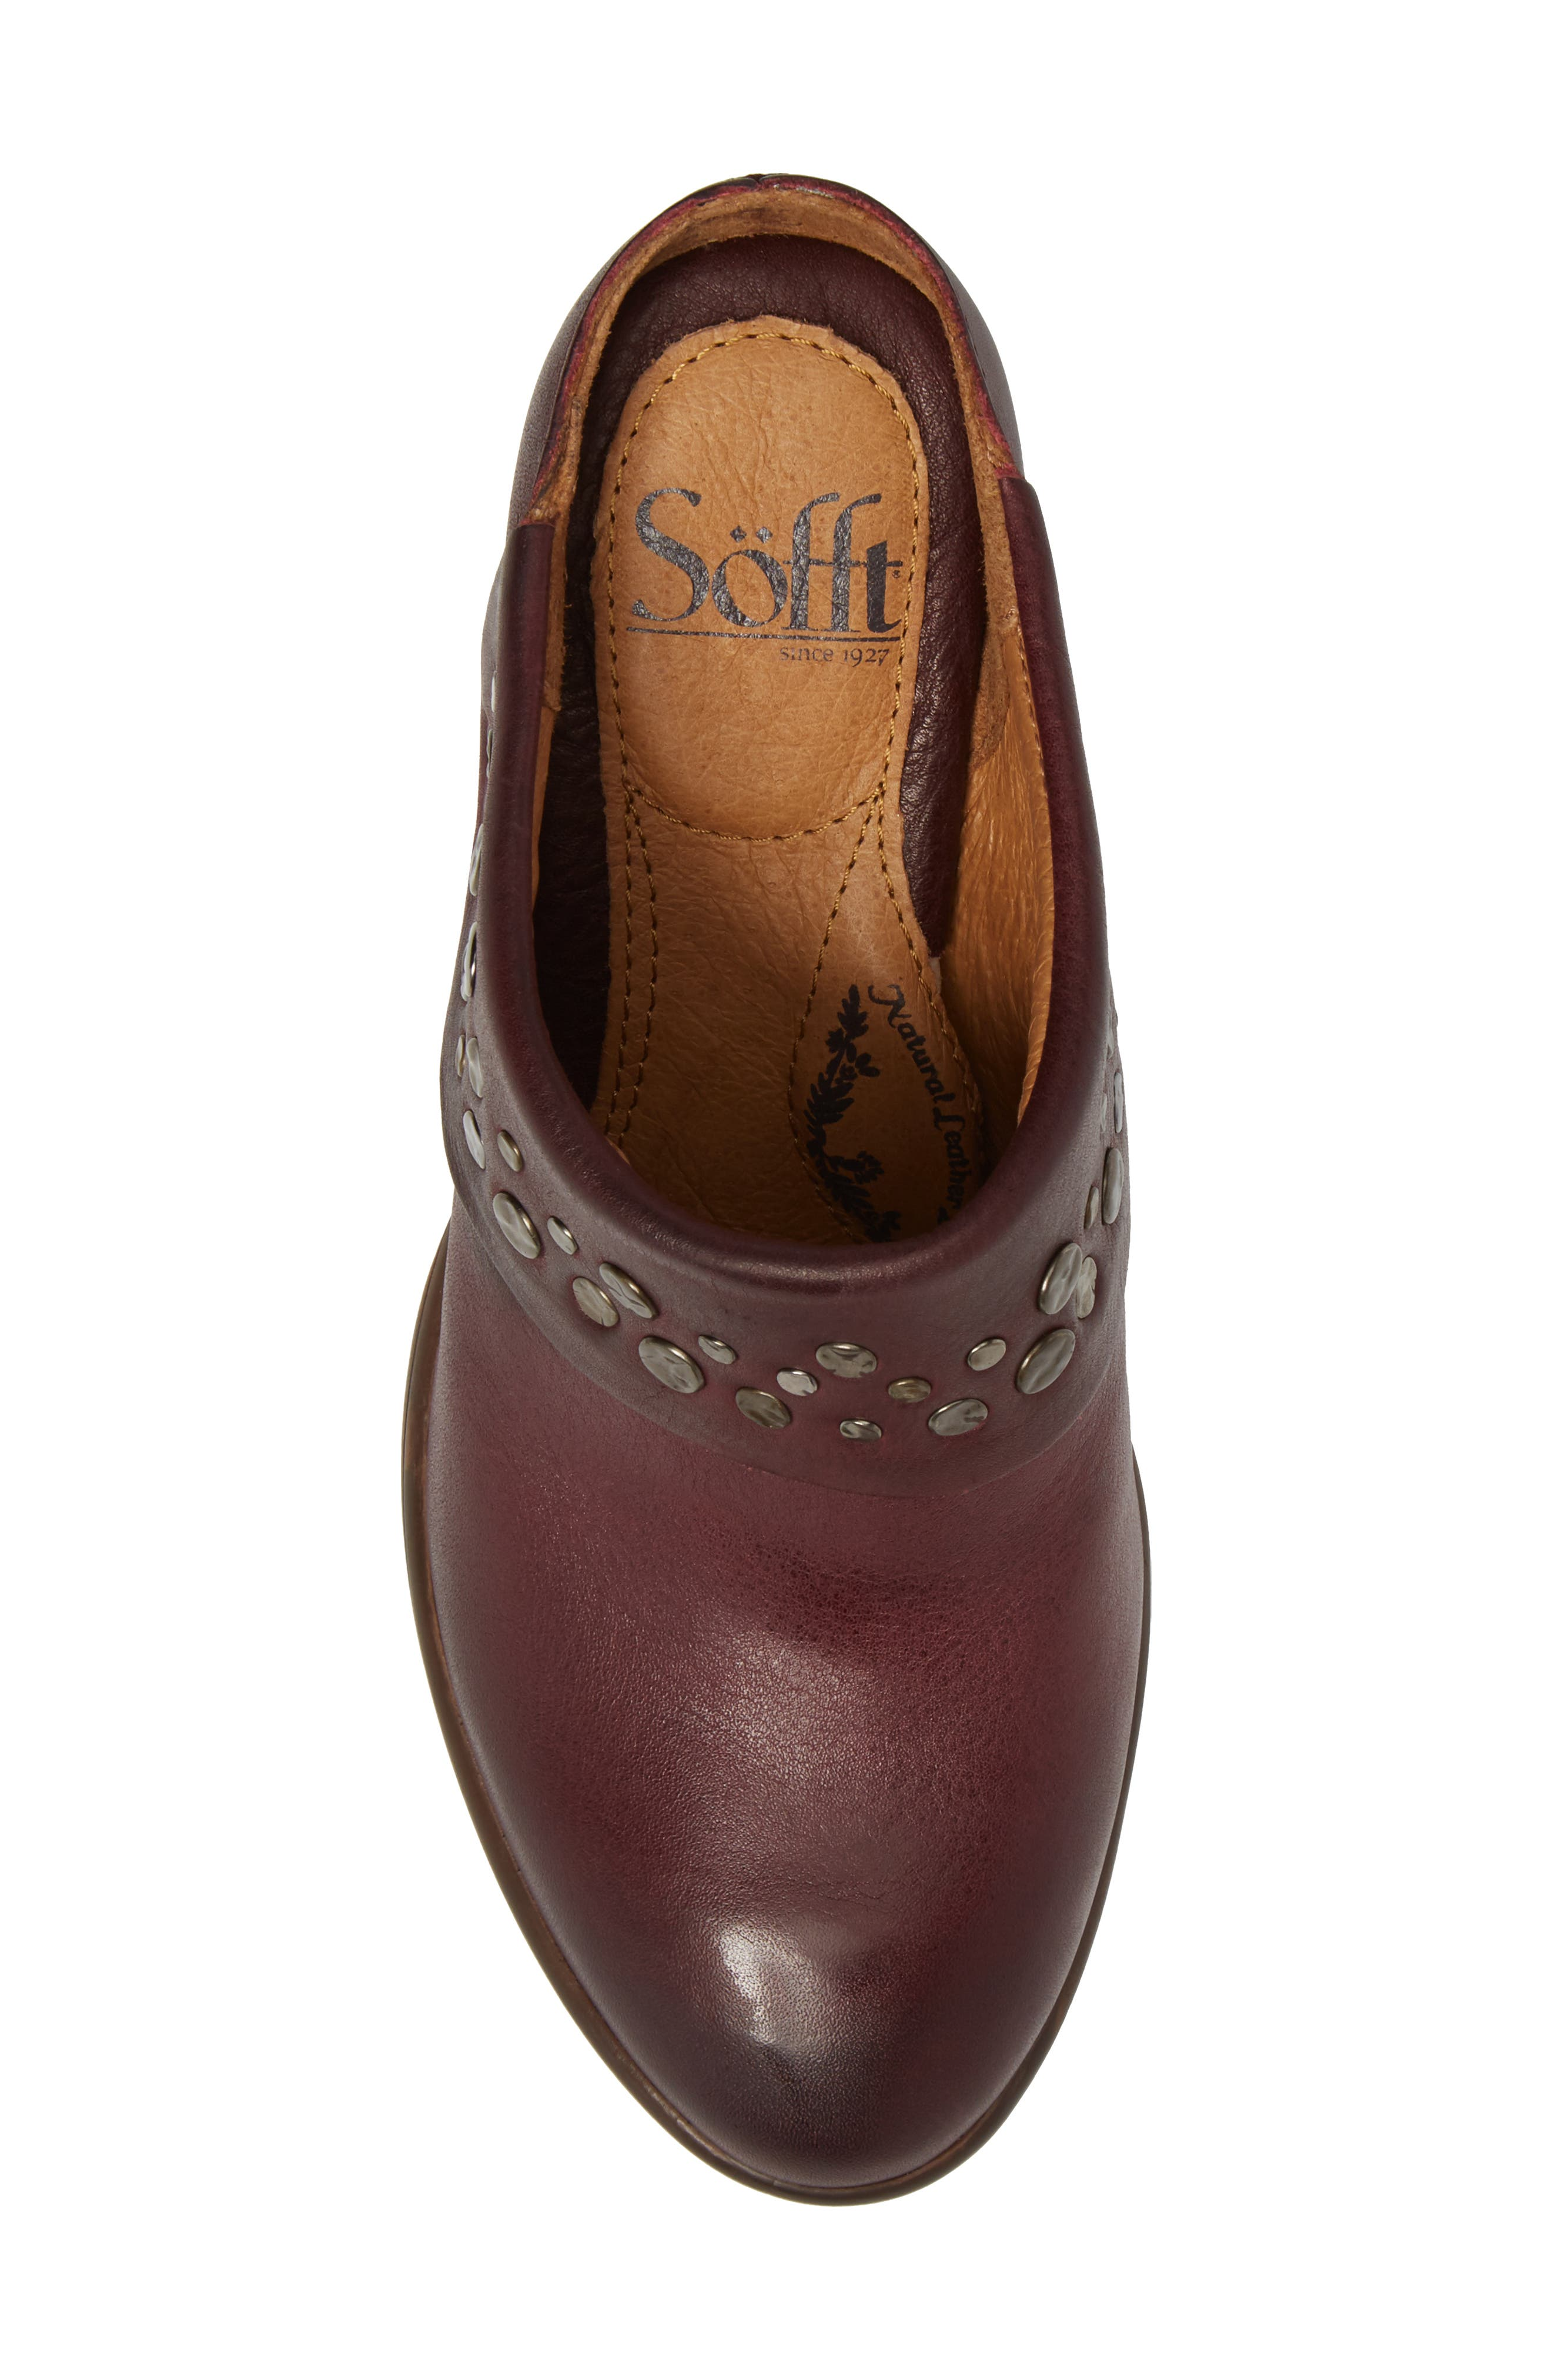 Gila Studded Mule,                             Alternate thumbnail 5, color,                             MARSALA RED LEATHER